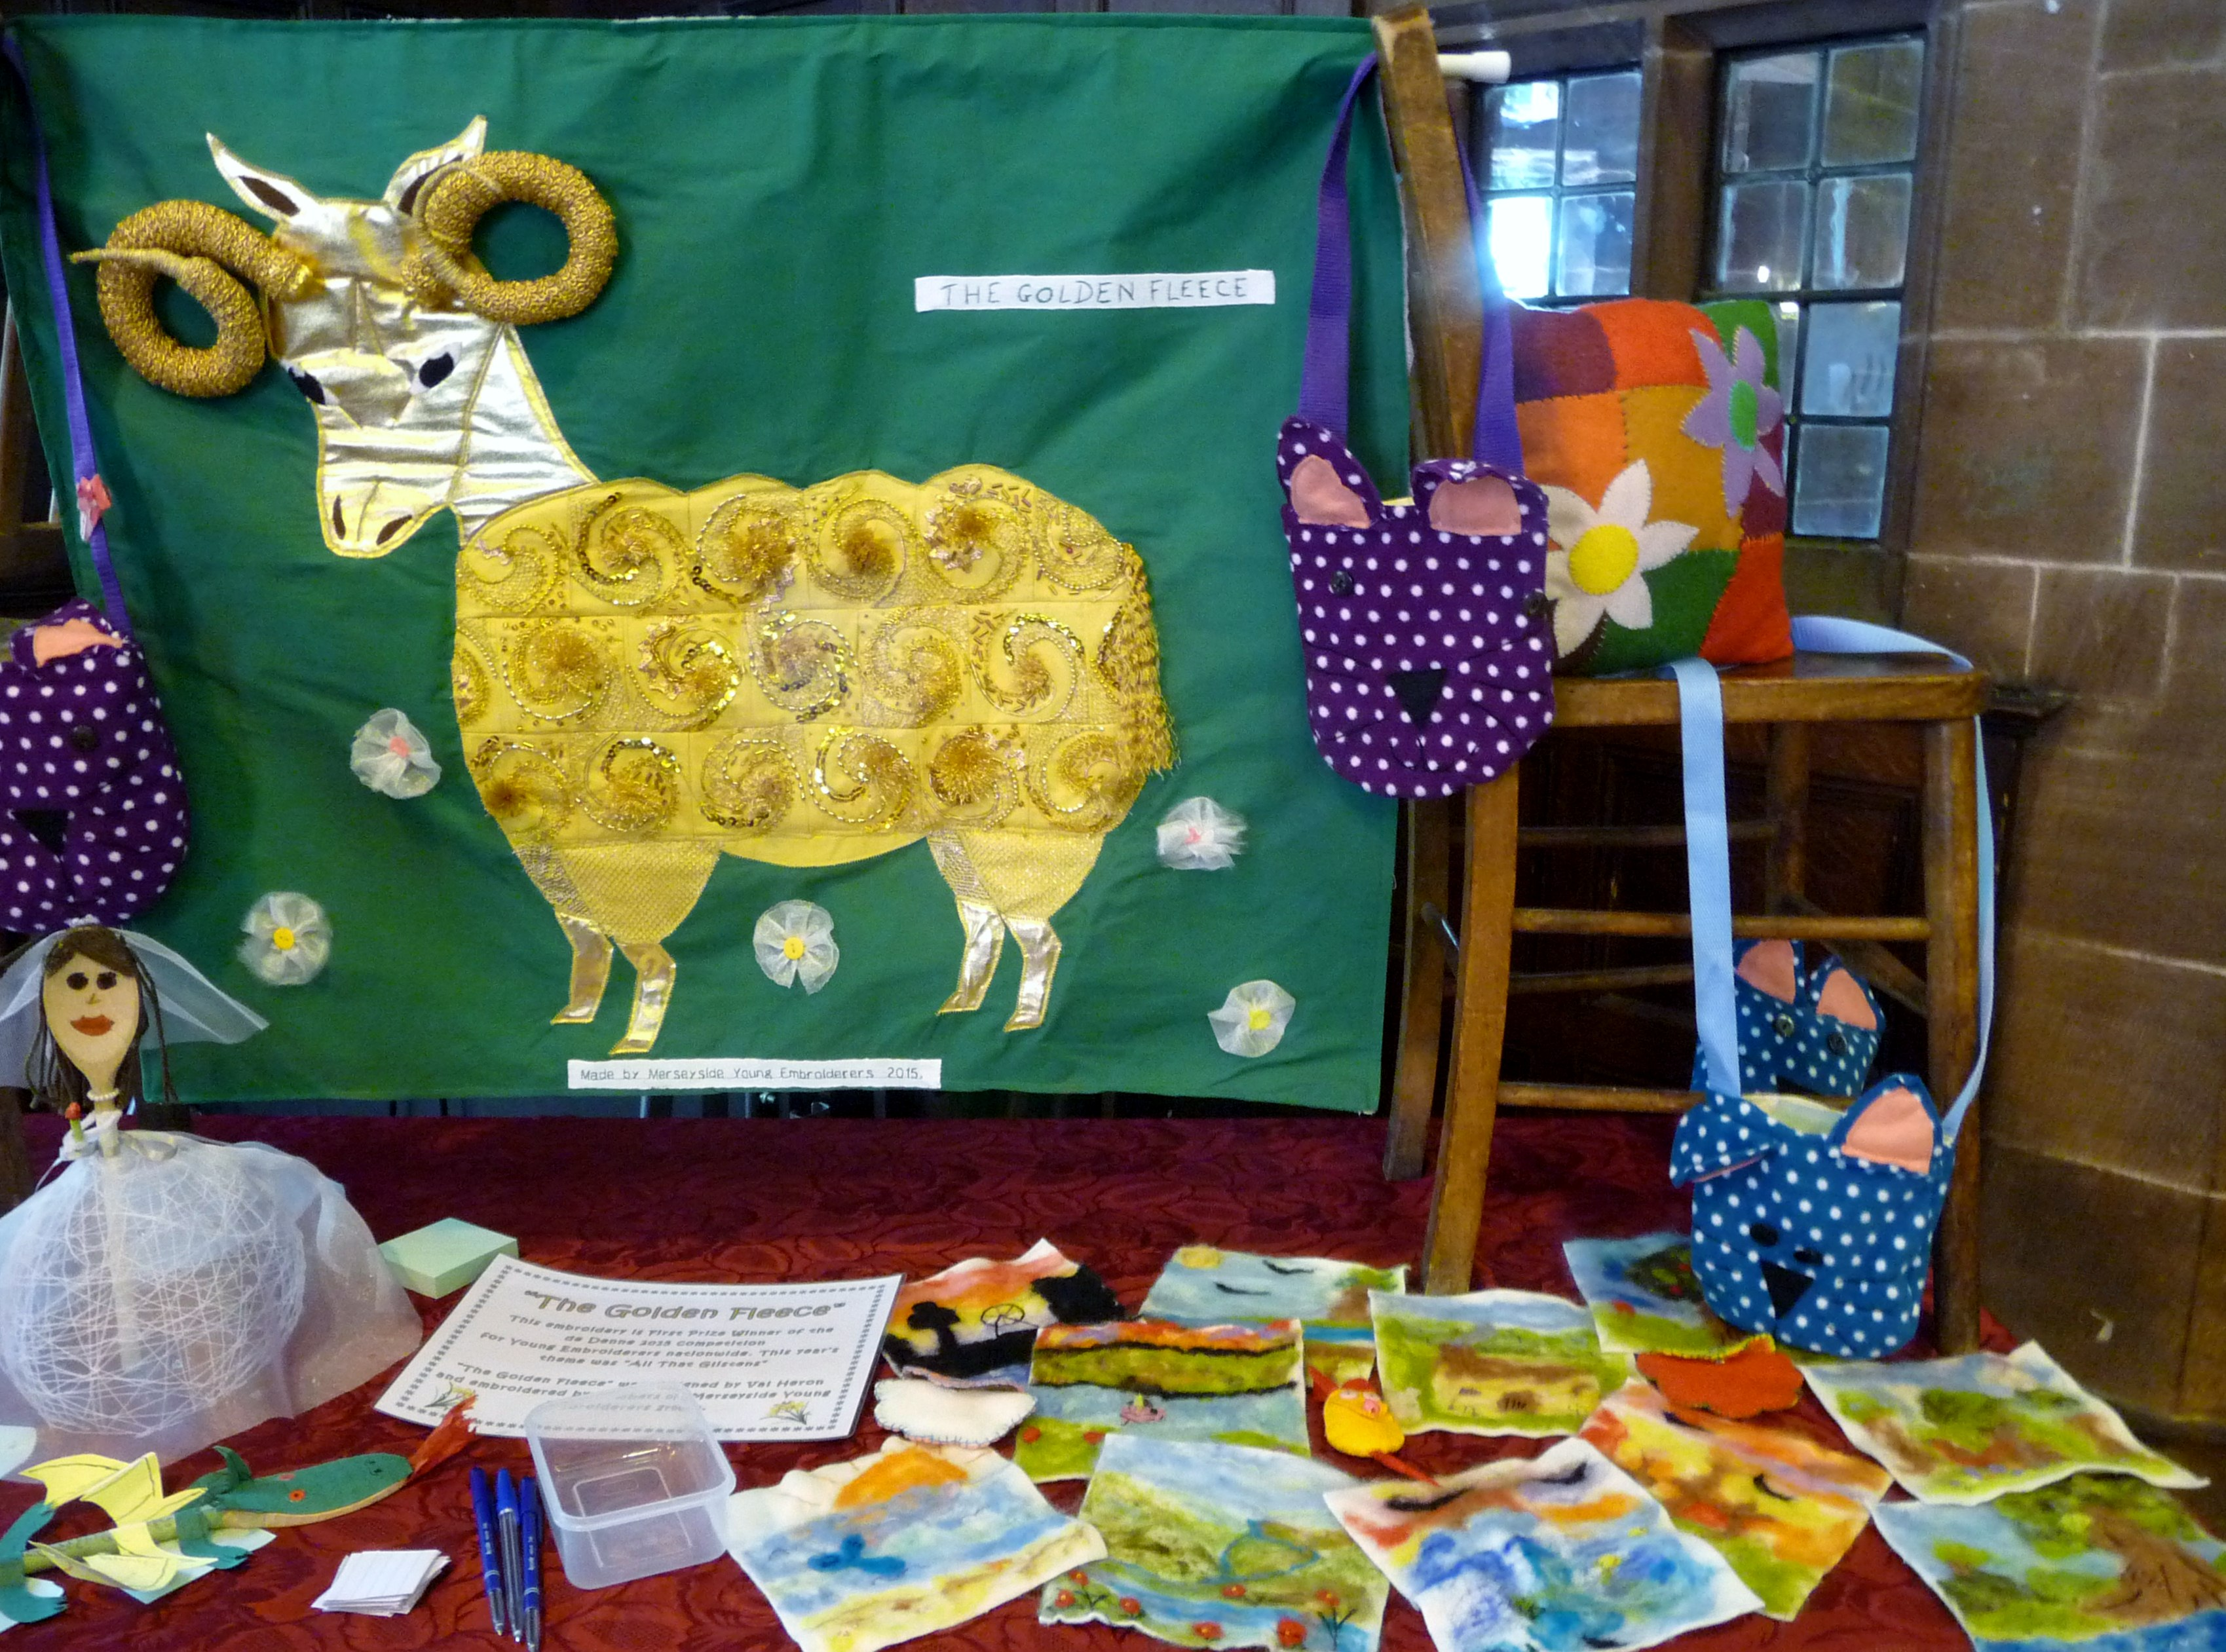 this is our YE display at MEG Summer Tea Party 2015, showing 'The Golden Fleece', 2015 winner of the Group Award of the national deDenne embroidery competion for Young Embroiderers